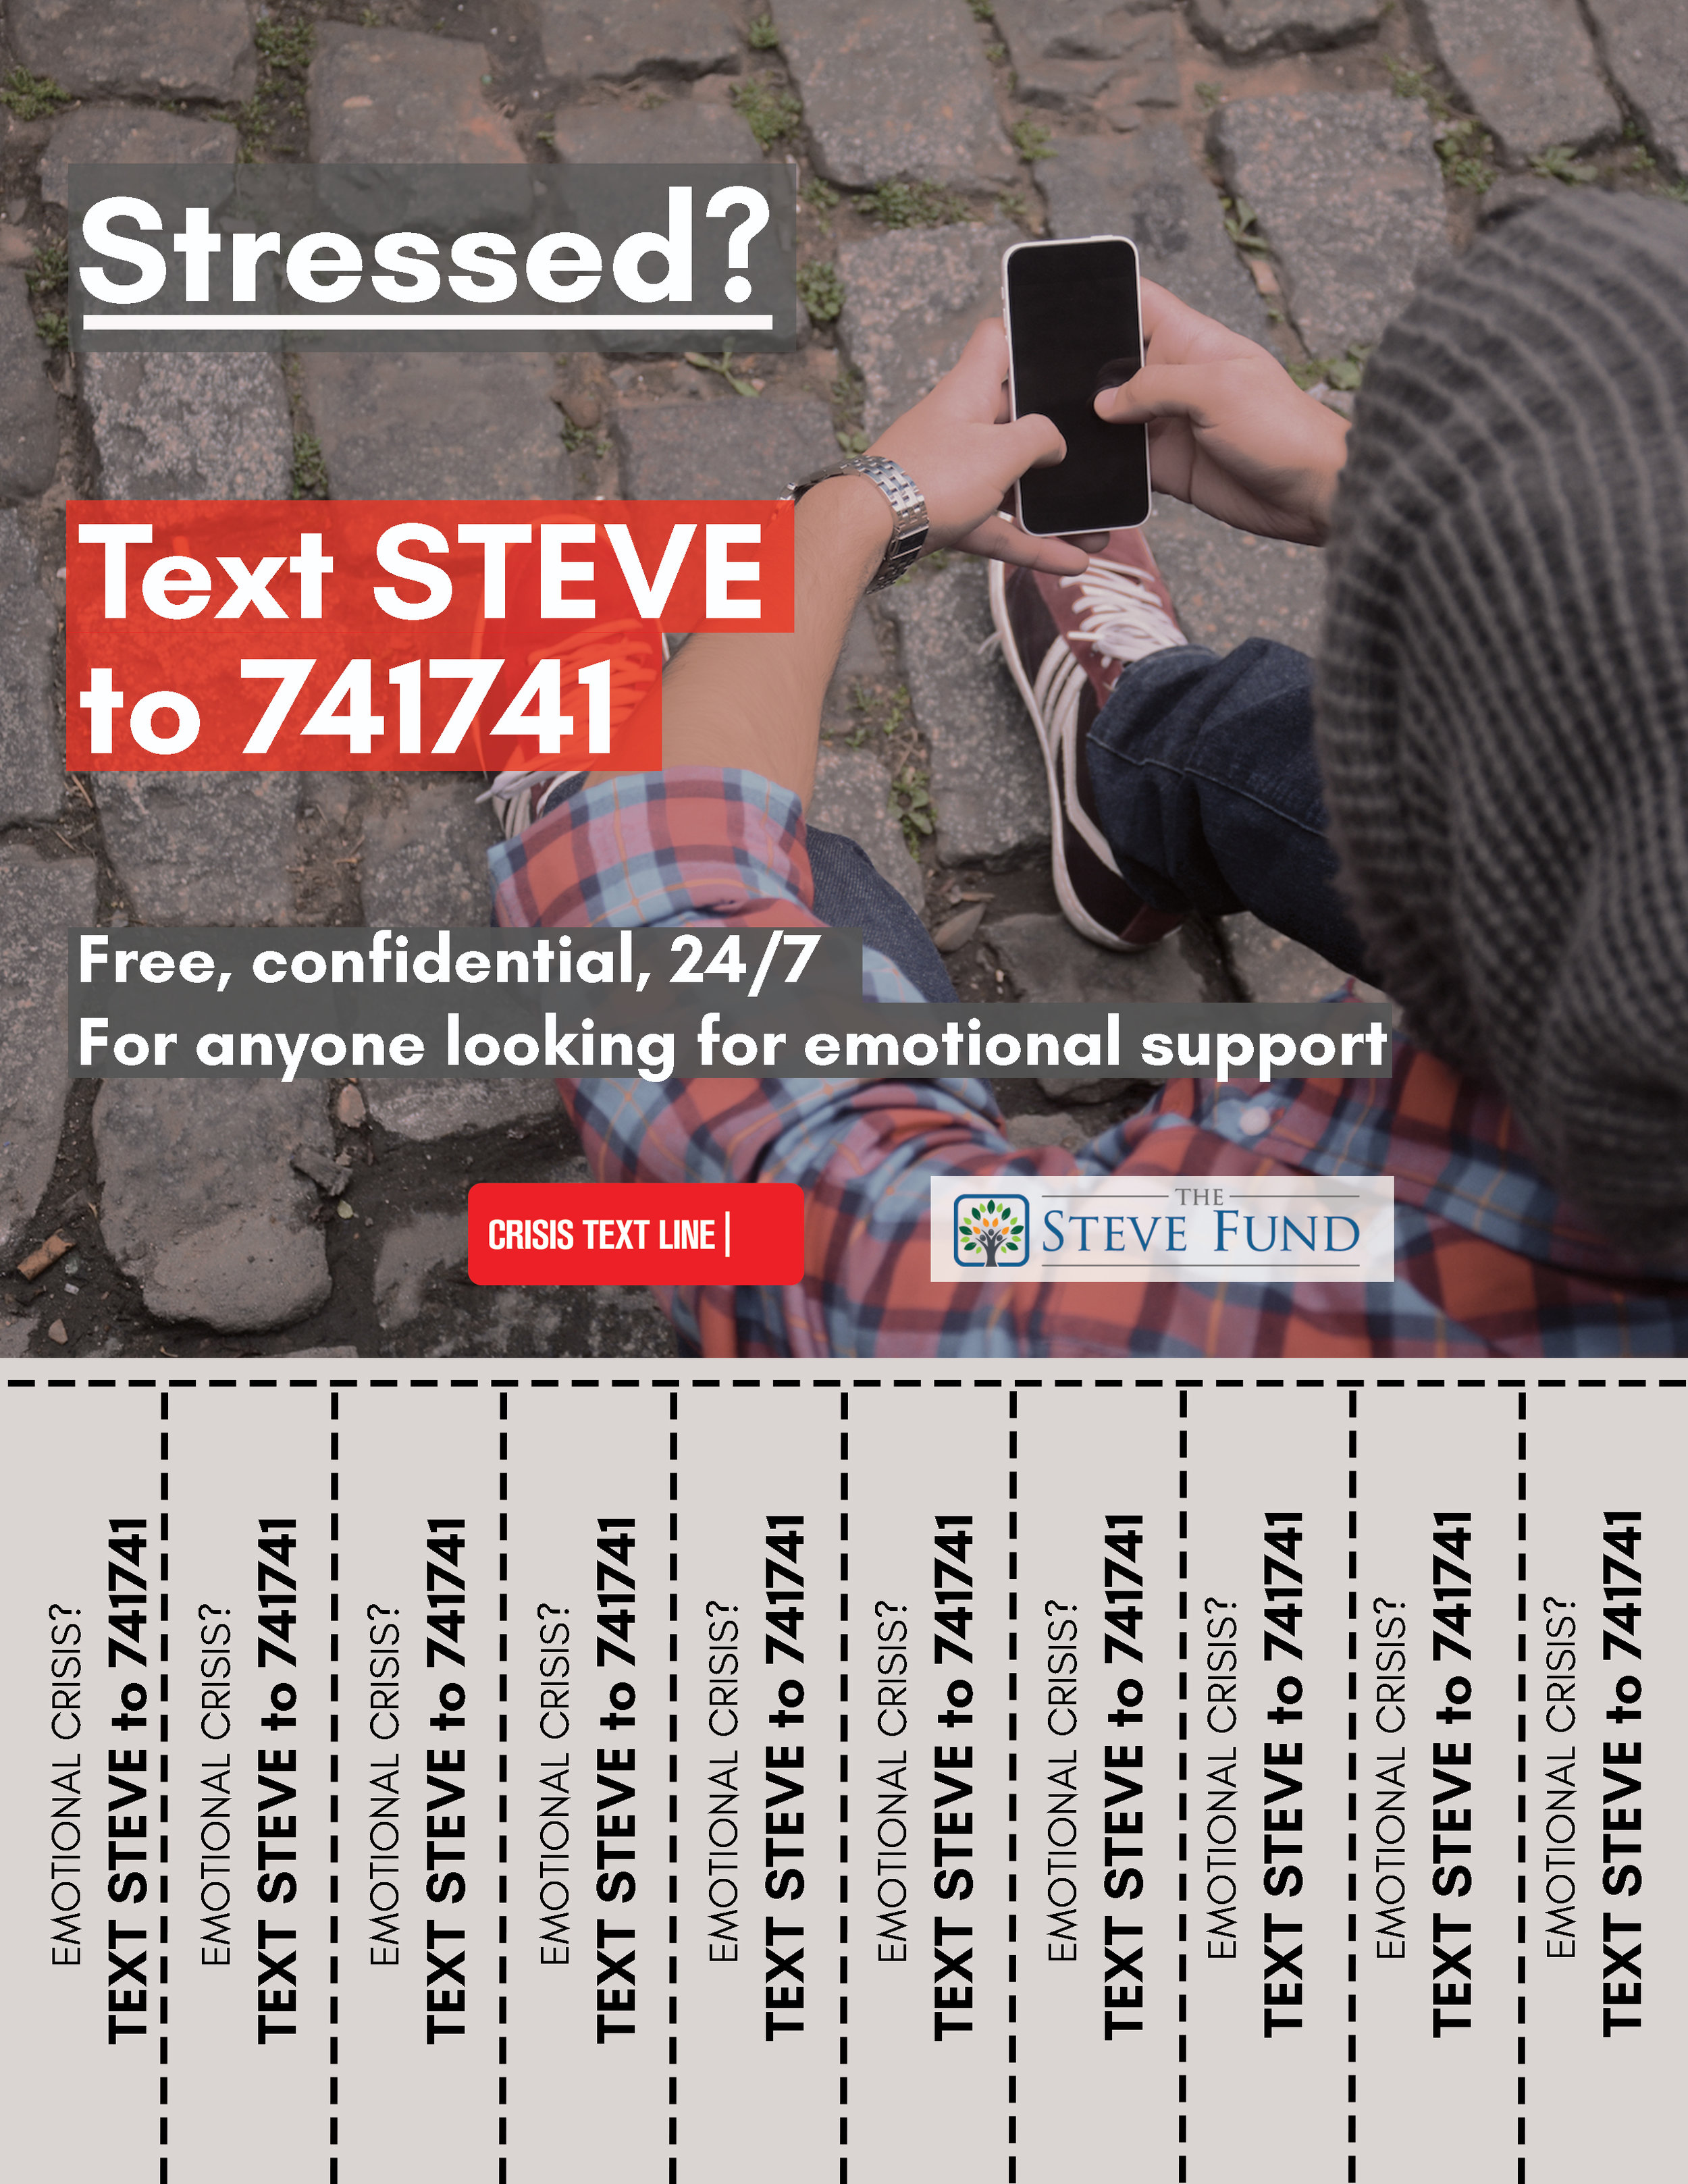 Male Teen Texting Stressed Tear Off Flyer 3.14.17.jpg